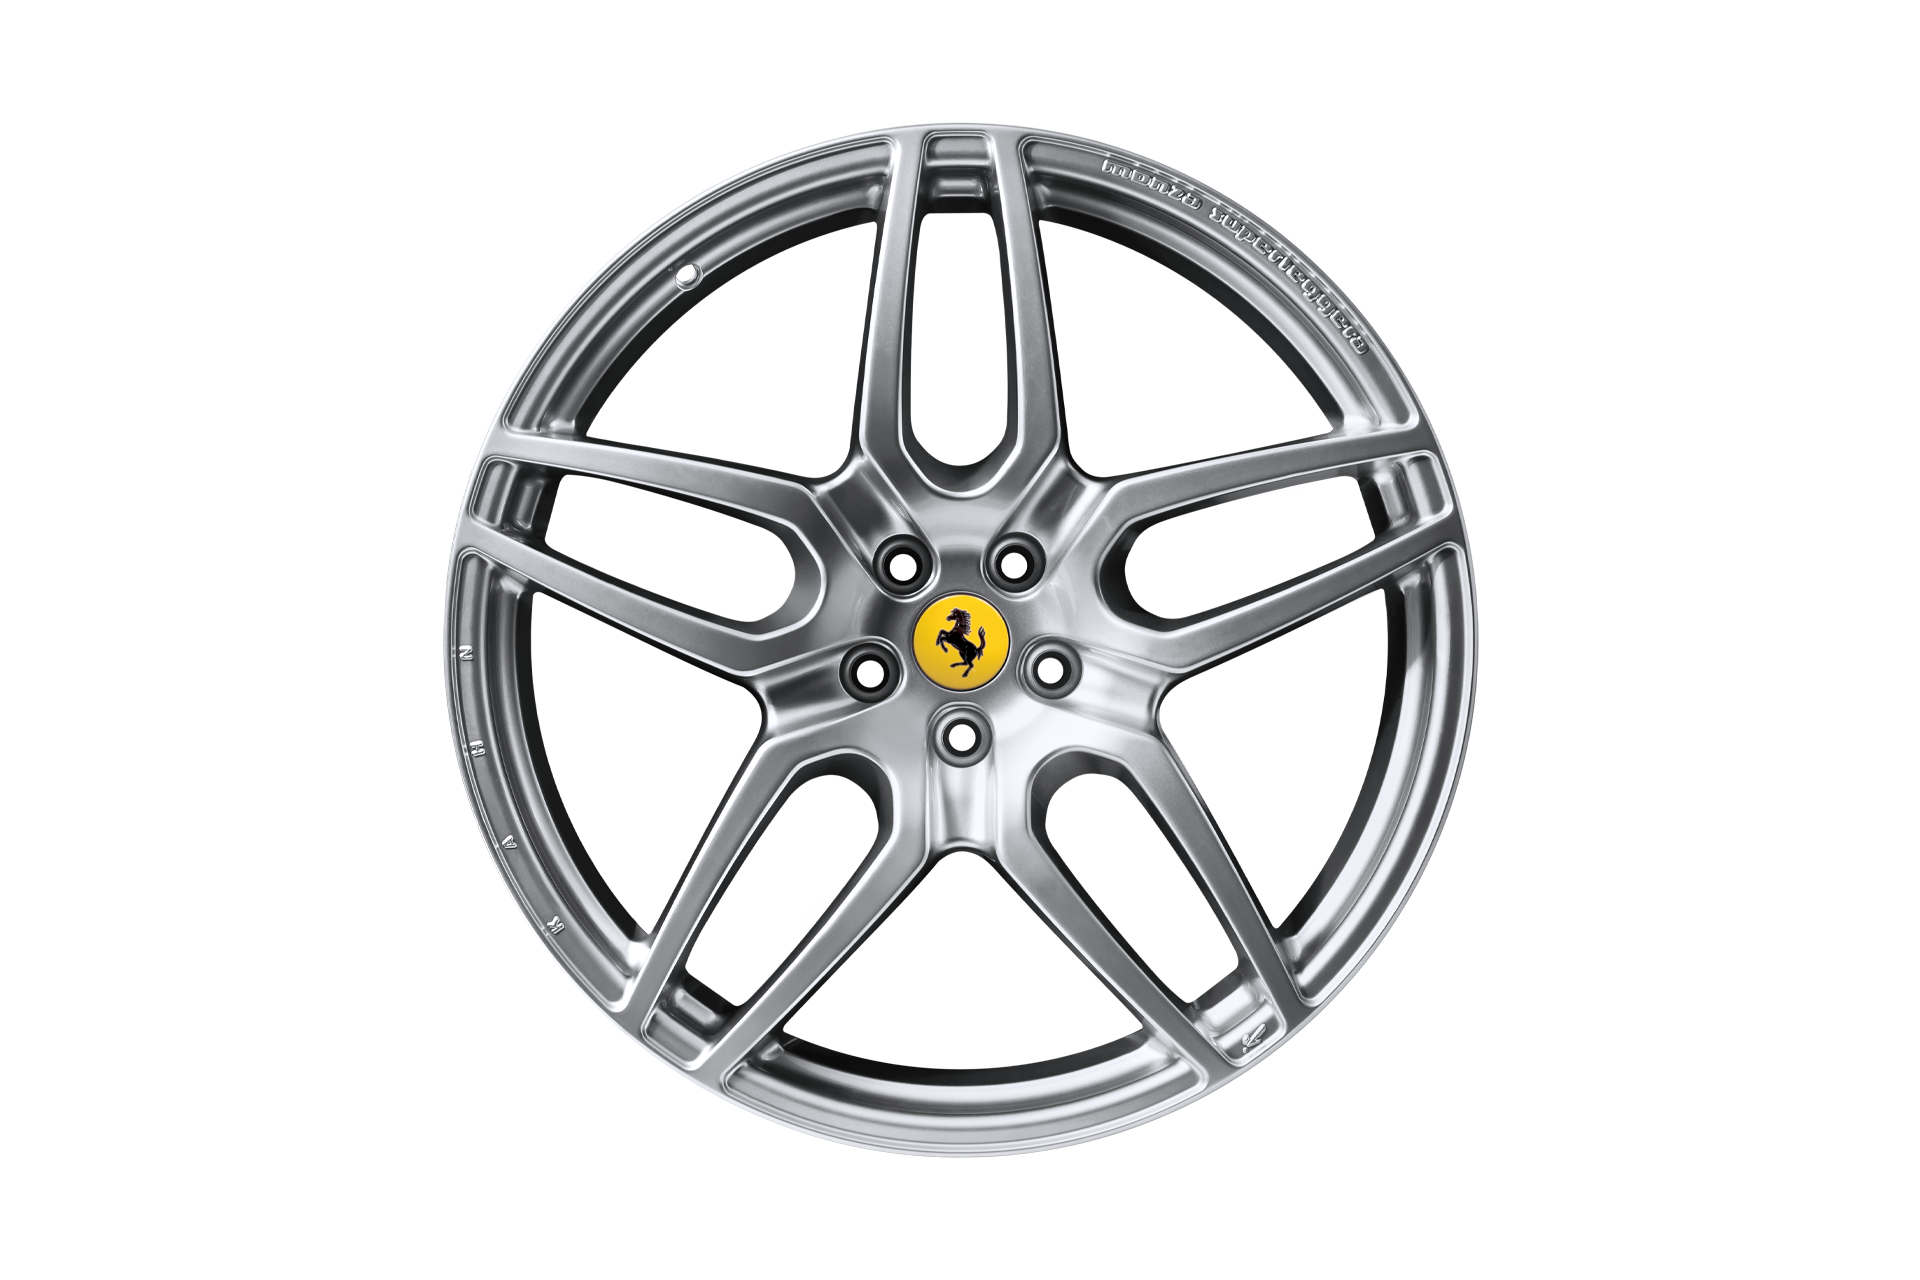 Ferrari 488 Monza Superleggera Light Alloy Wheels by Kahn - Image 3693